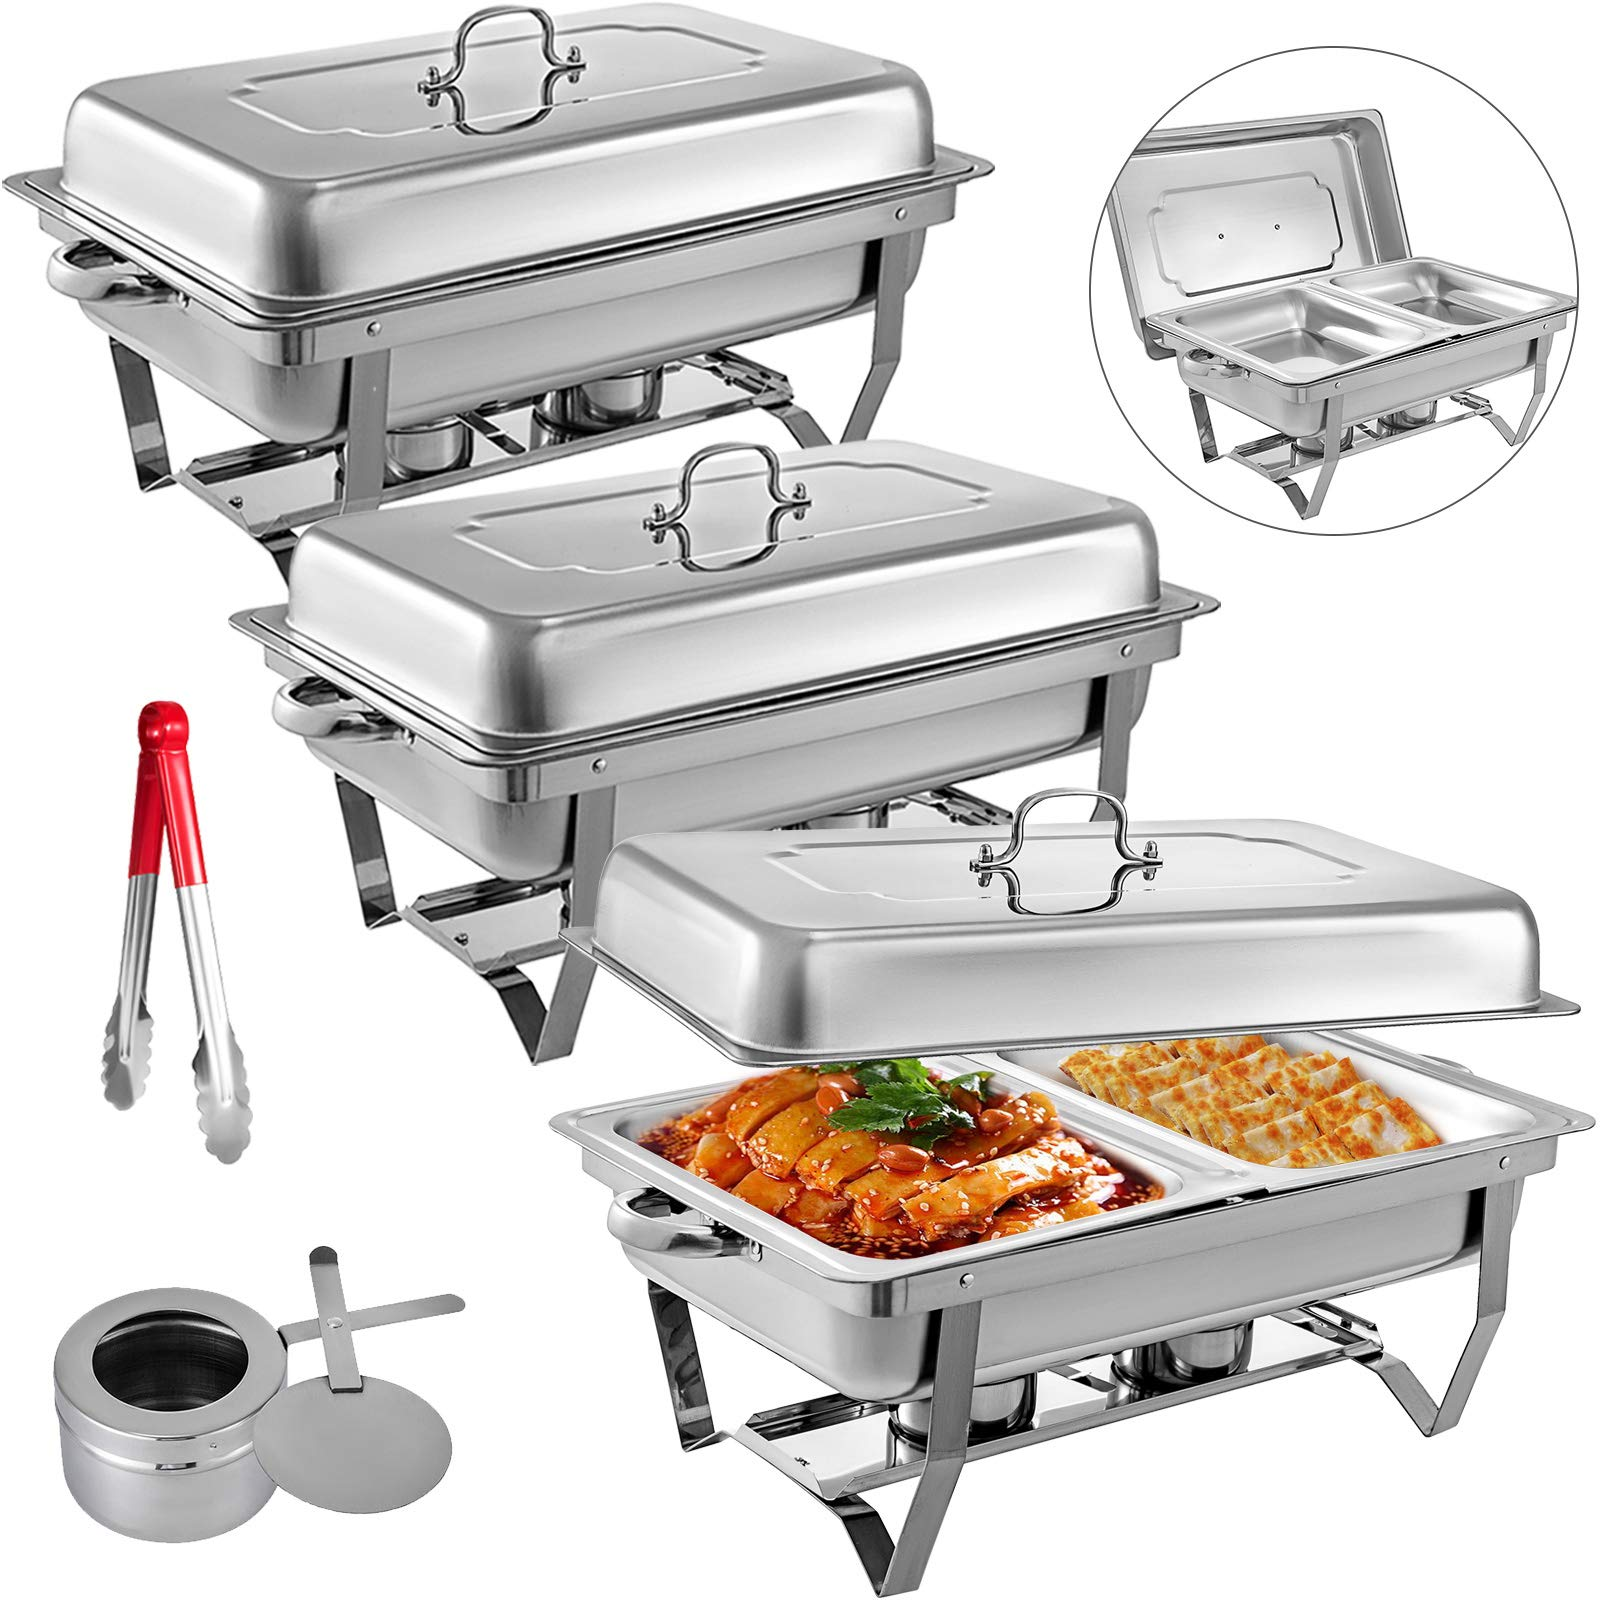 Mophorn 3 Packs Stainless Steel Chafing Dishes 2 Half Size Pans 8 Quart Rectangular Chafer Complete Set